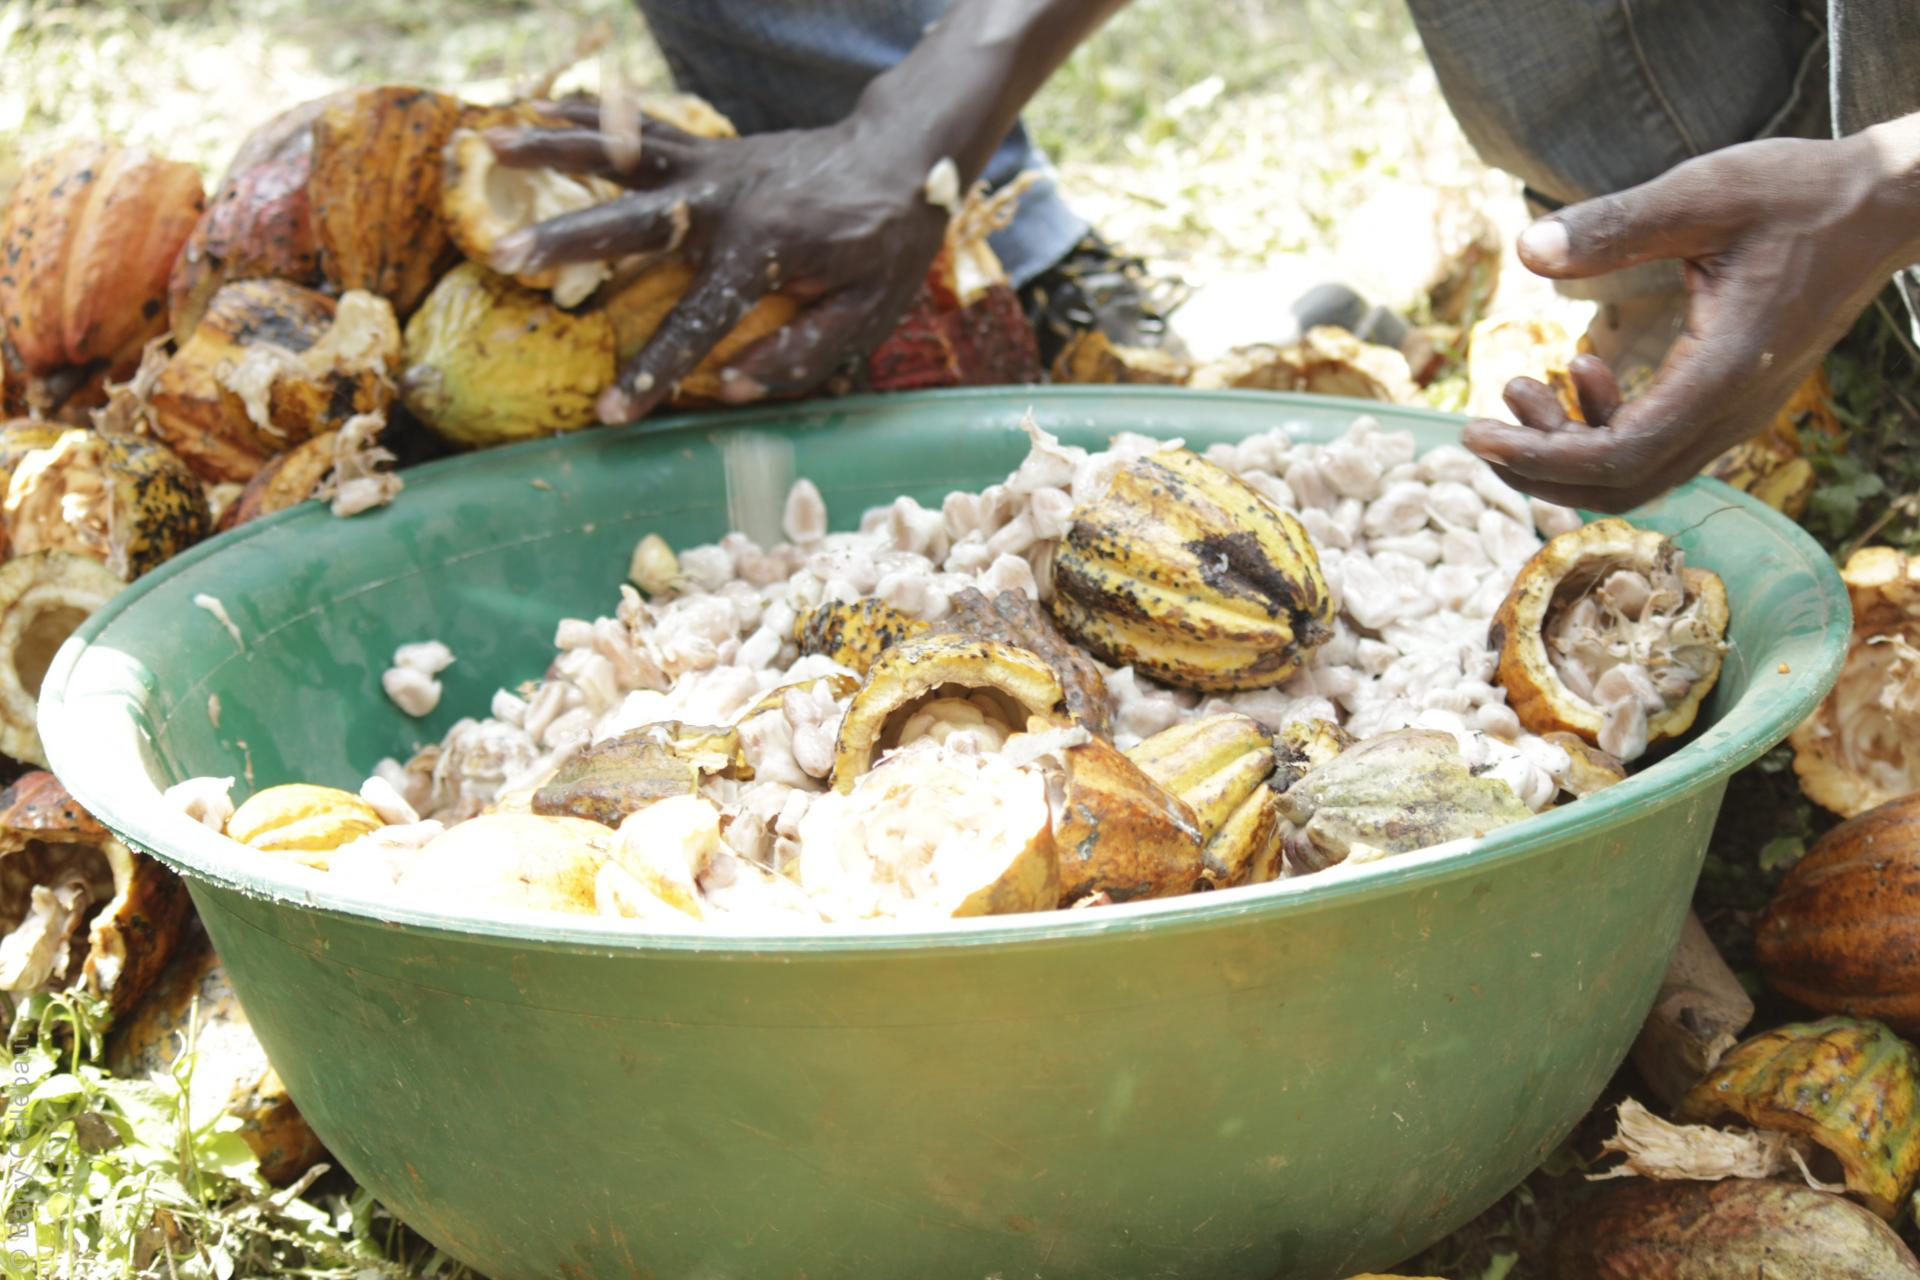 Farmers cleaning cocoa beans